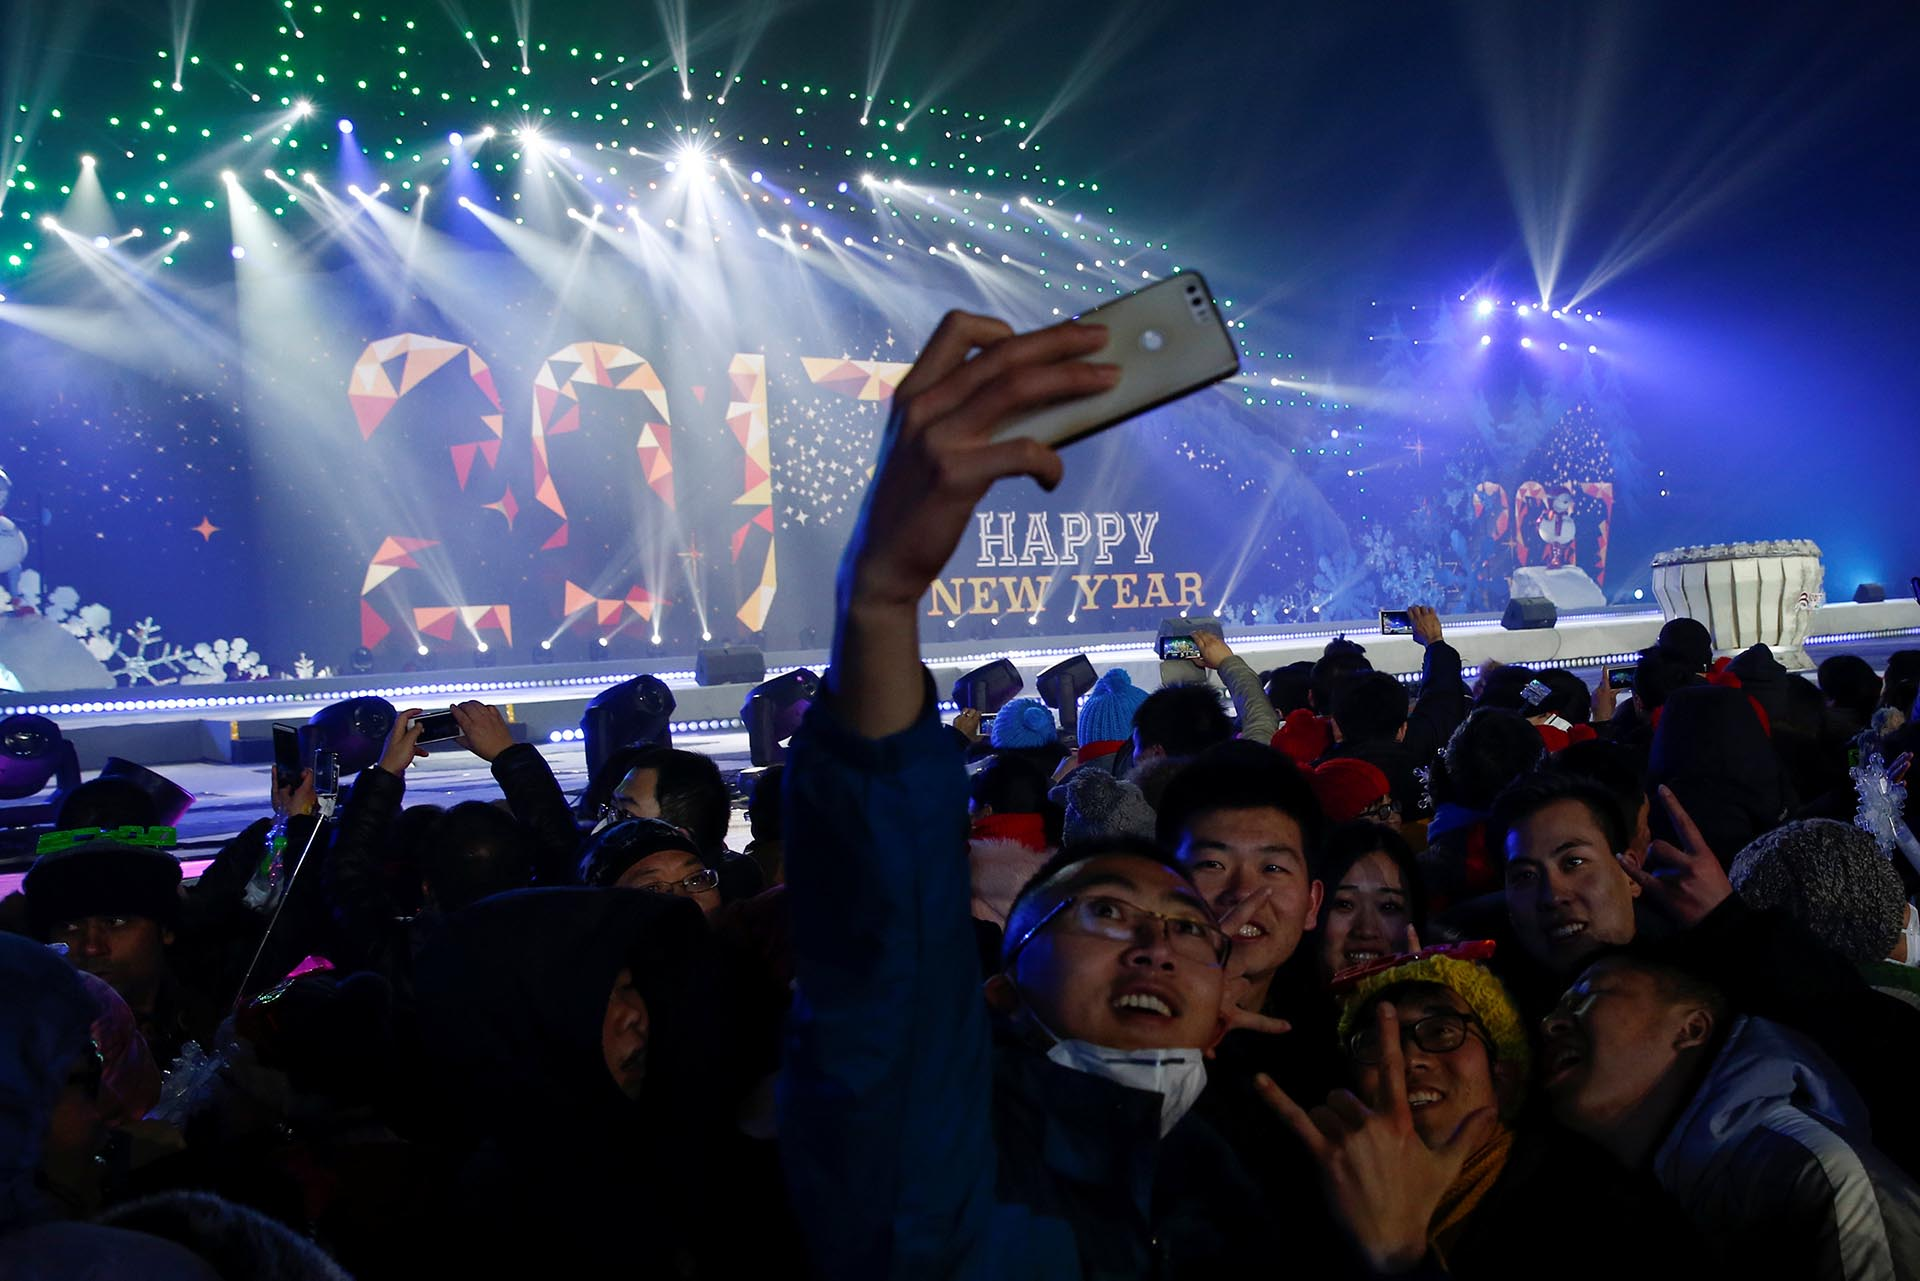 People pose for pictures as they attend a New Year's Eve countdown event in Beijing, China, December 31, 2016. REUTERS/Thomas Peter